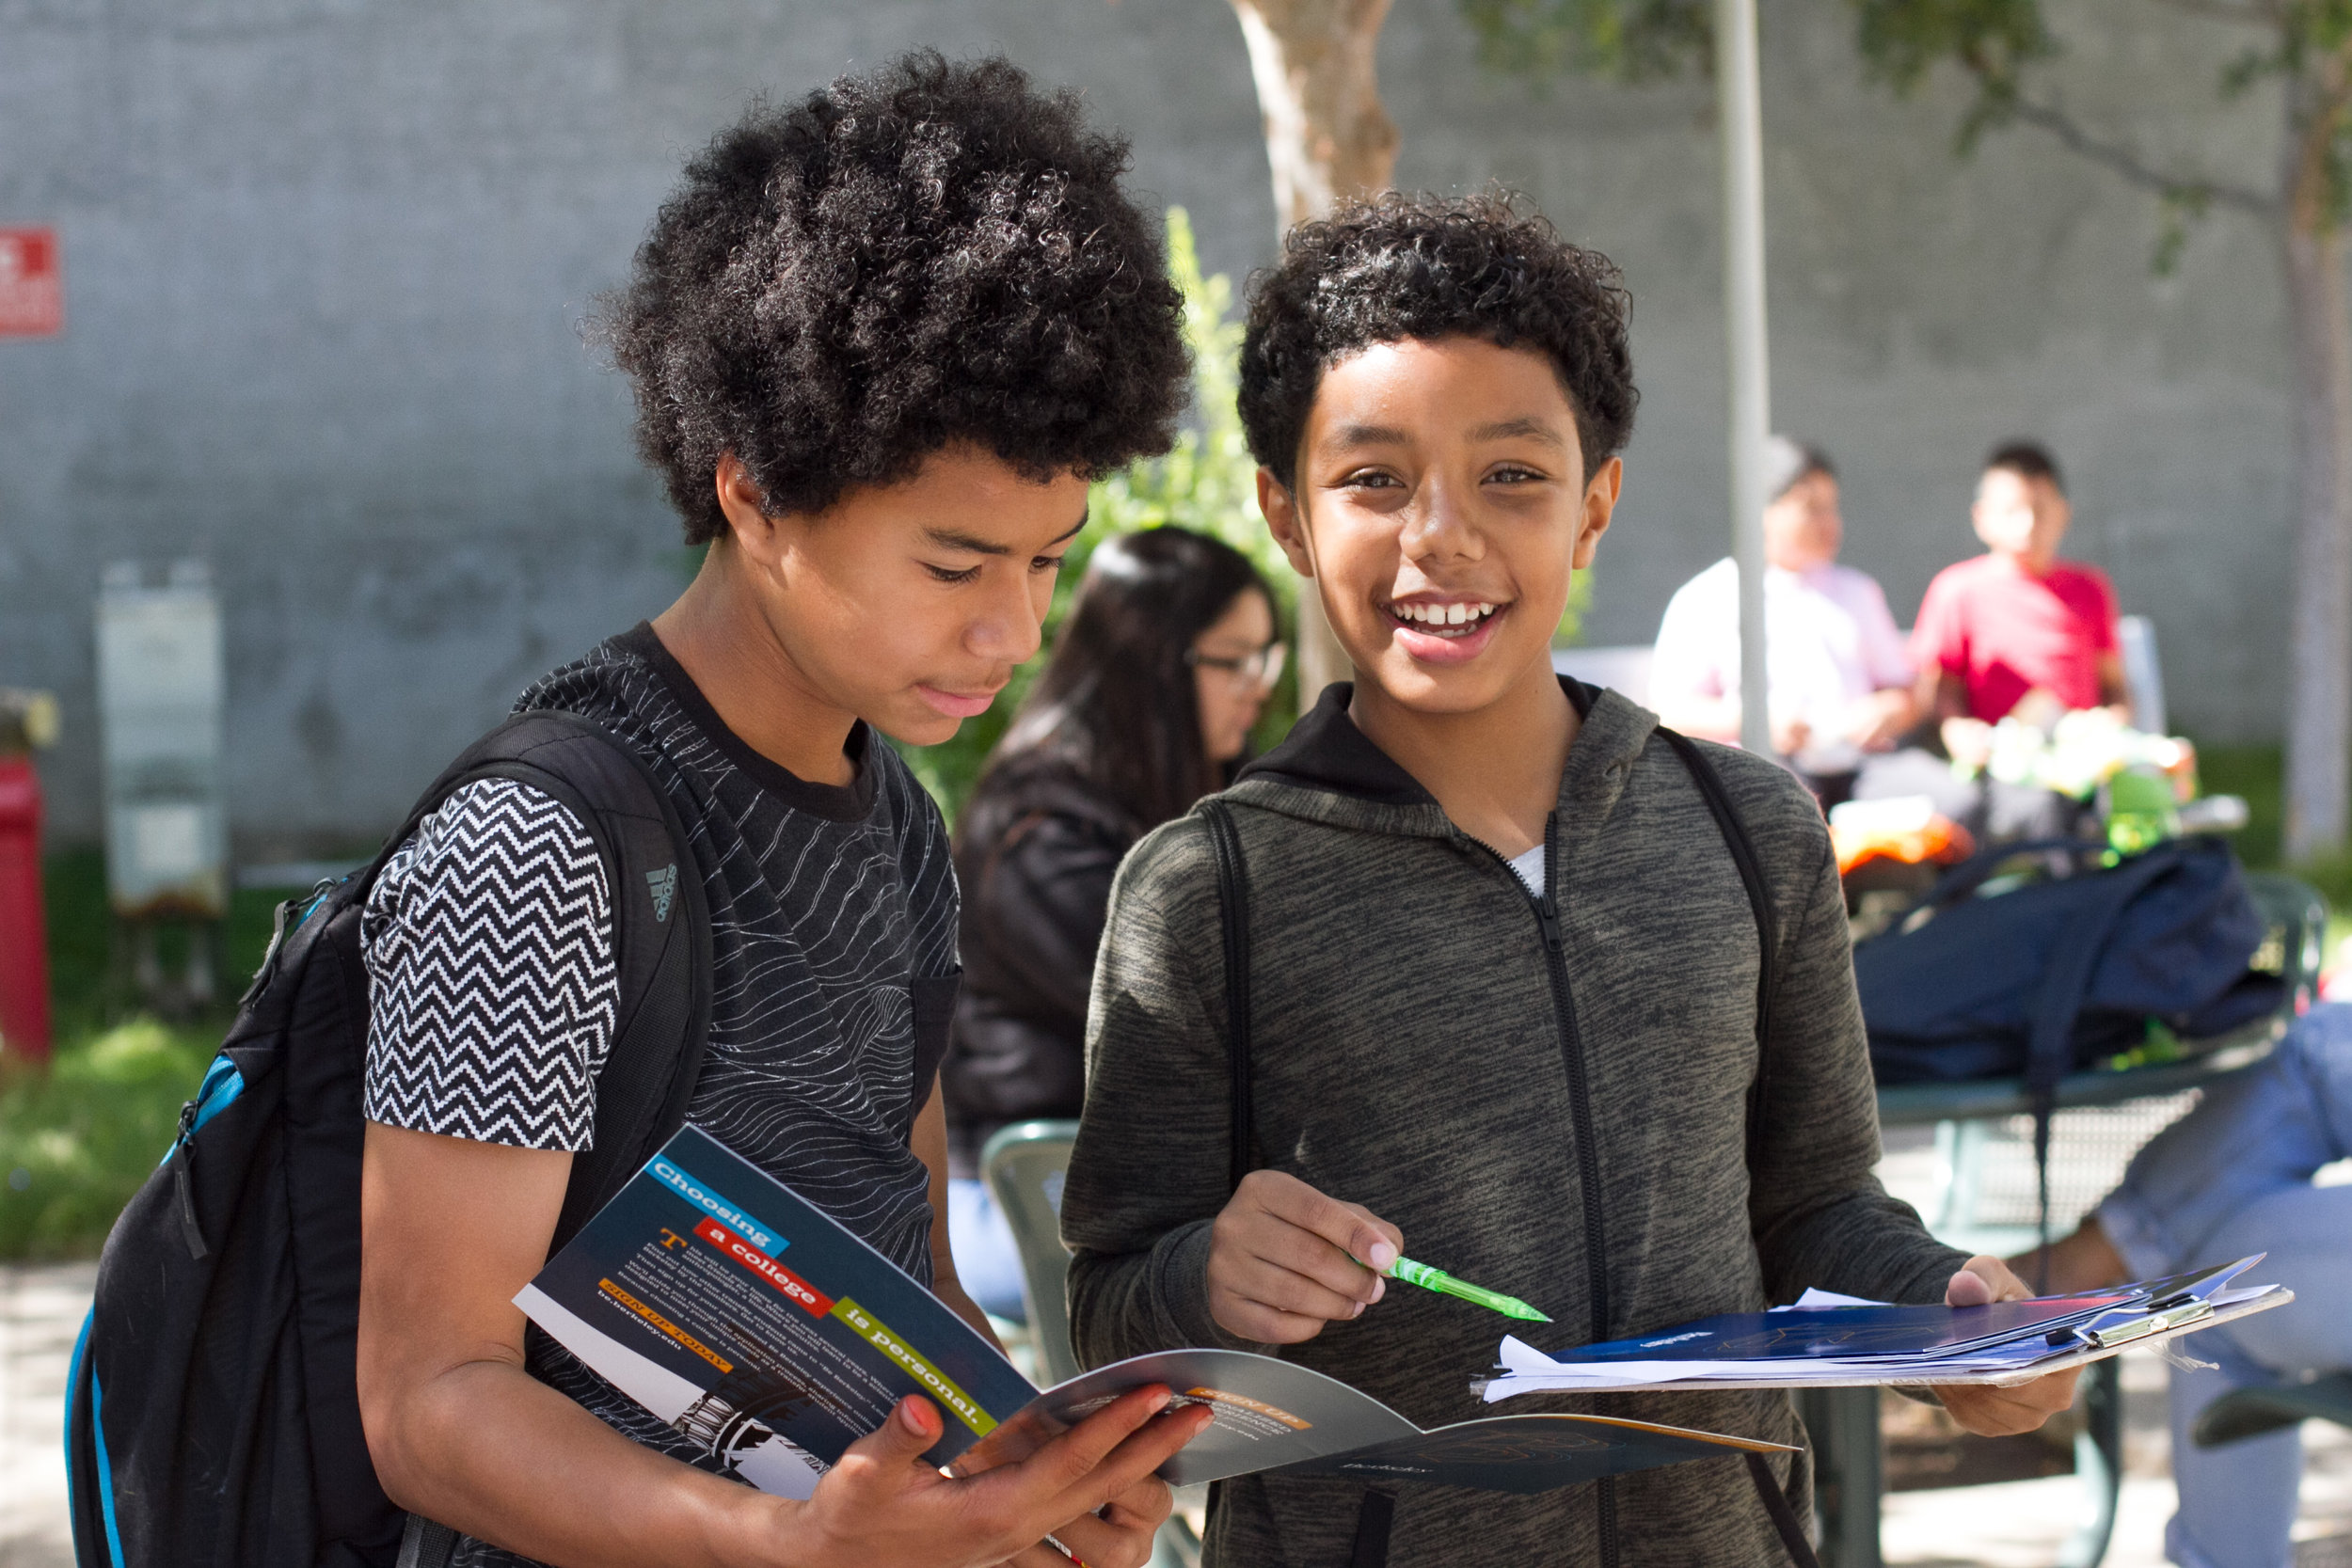 (L to R) Lincoln Middle School students Malek Williams and Makhi Franklin on a school field trip to Santa Monica College's College Fair on the Main Campus of Santa Monica College in Santa Monica, Calif., October 10, 2017. (Photo By: Ripsime Avetisyan/Corsair Staff)